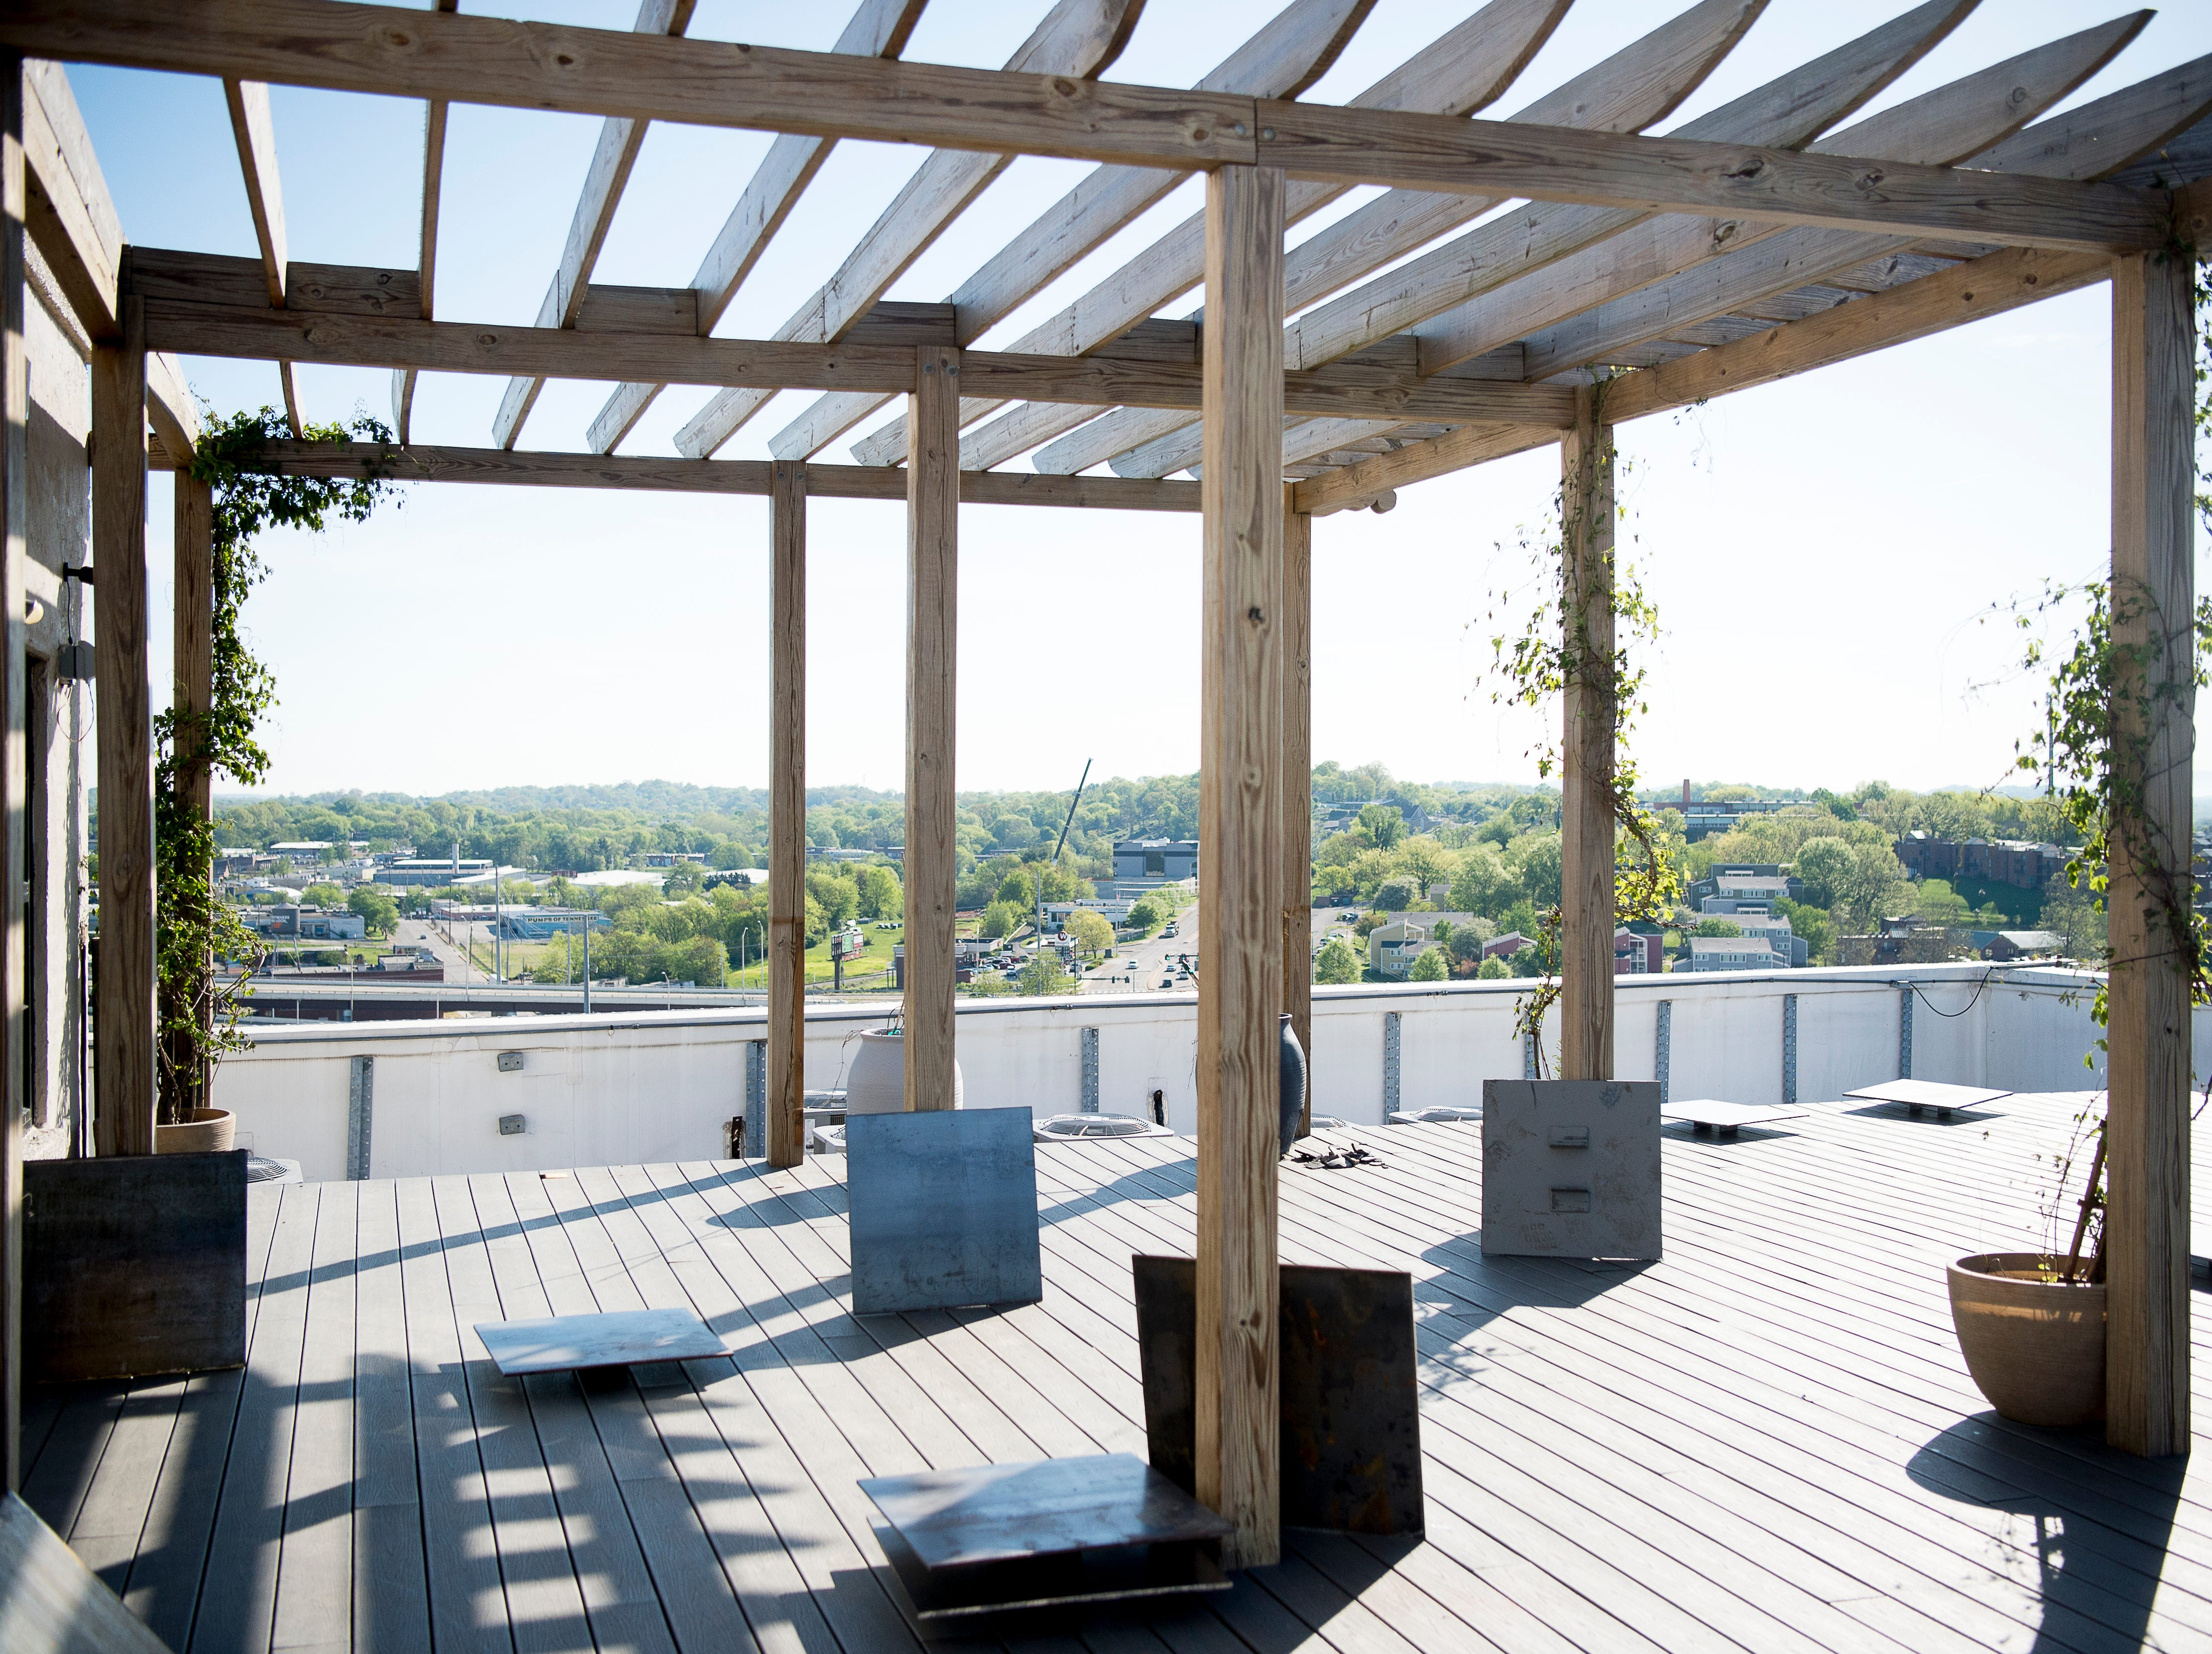 The rooftop patio atop Sterchi Lofts in Knoxville, Tennessee on Tuesday, April 16, 2019. Owner Lee Burch is installing a new railing costing an estimated $70,000.